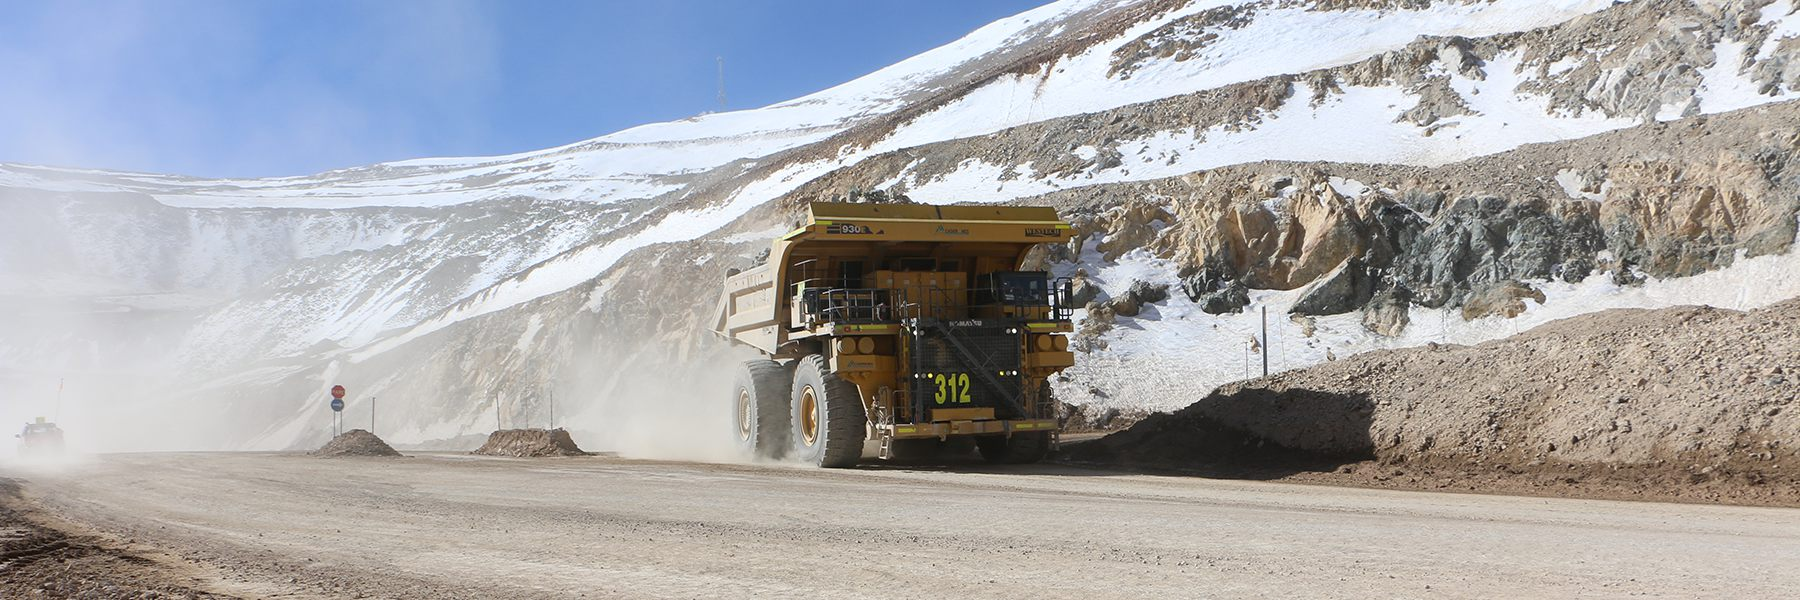 Chile Mining Road